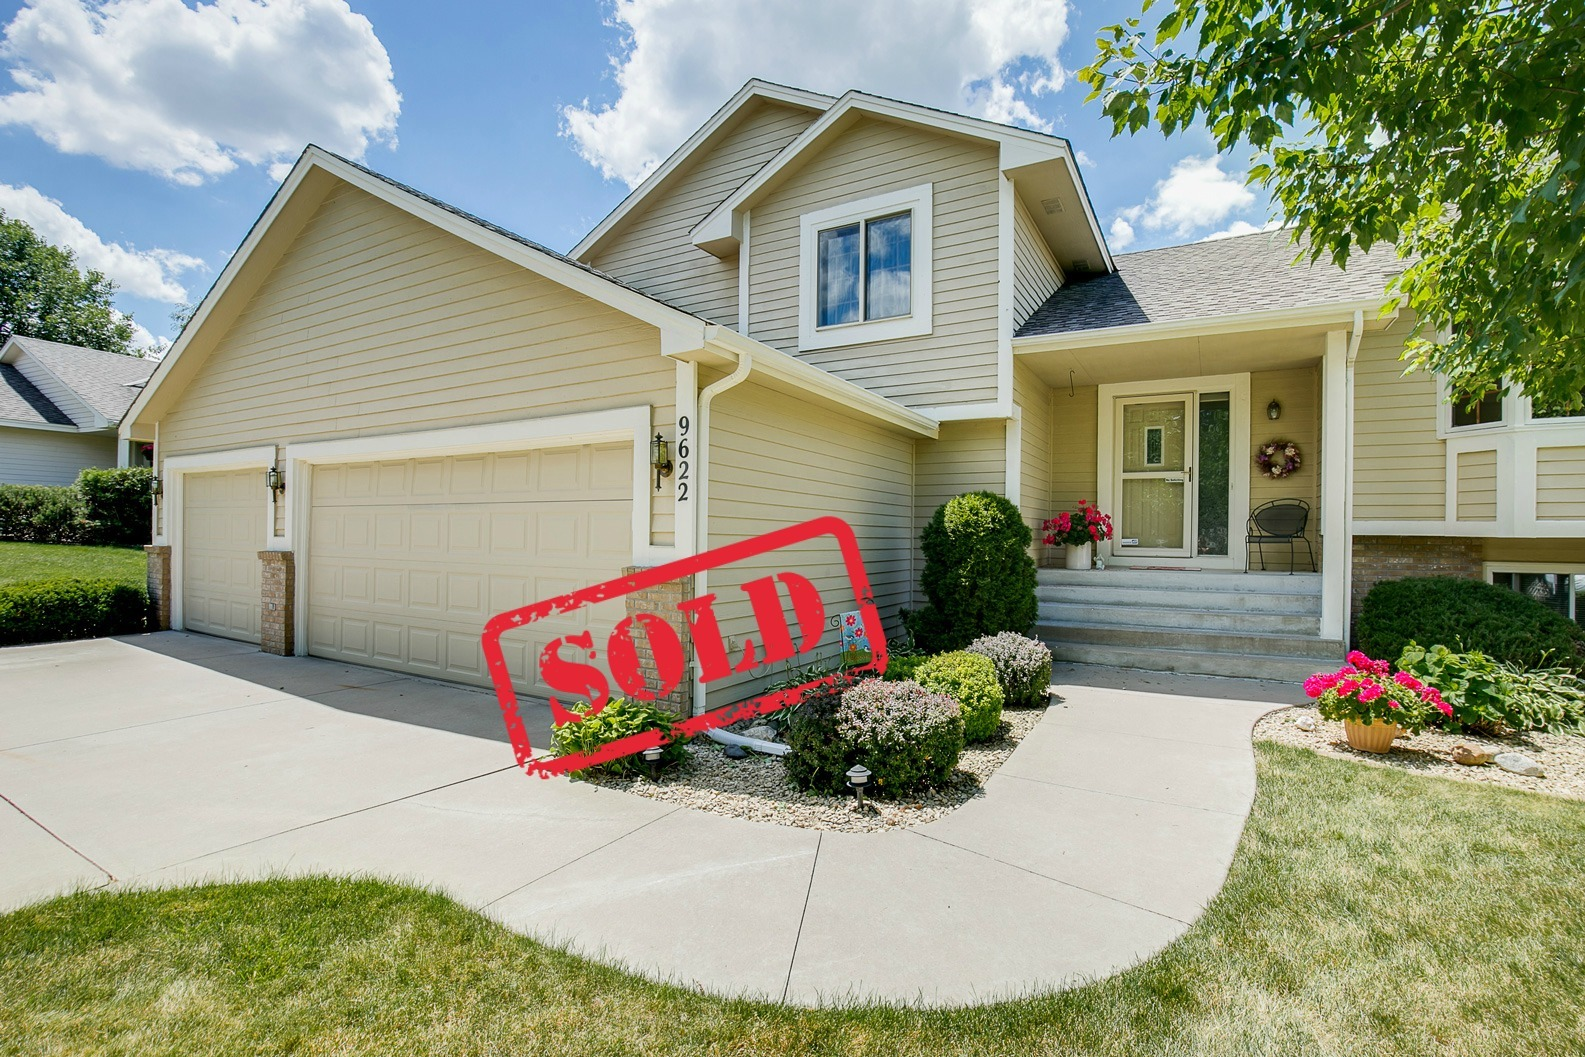 Heidi Herda Sells Another Champlin Home in 4 Days!